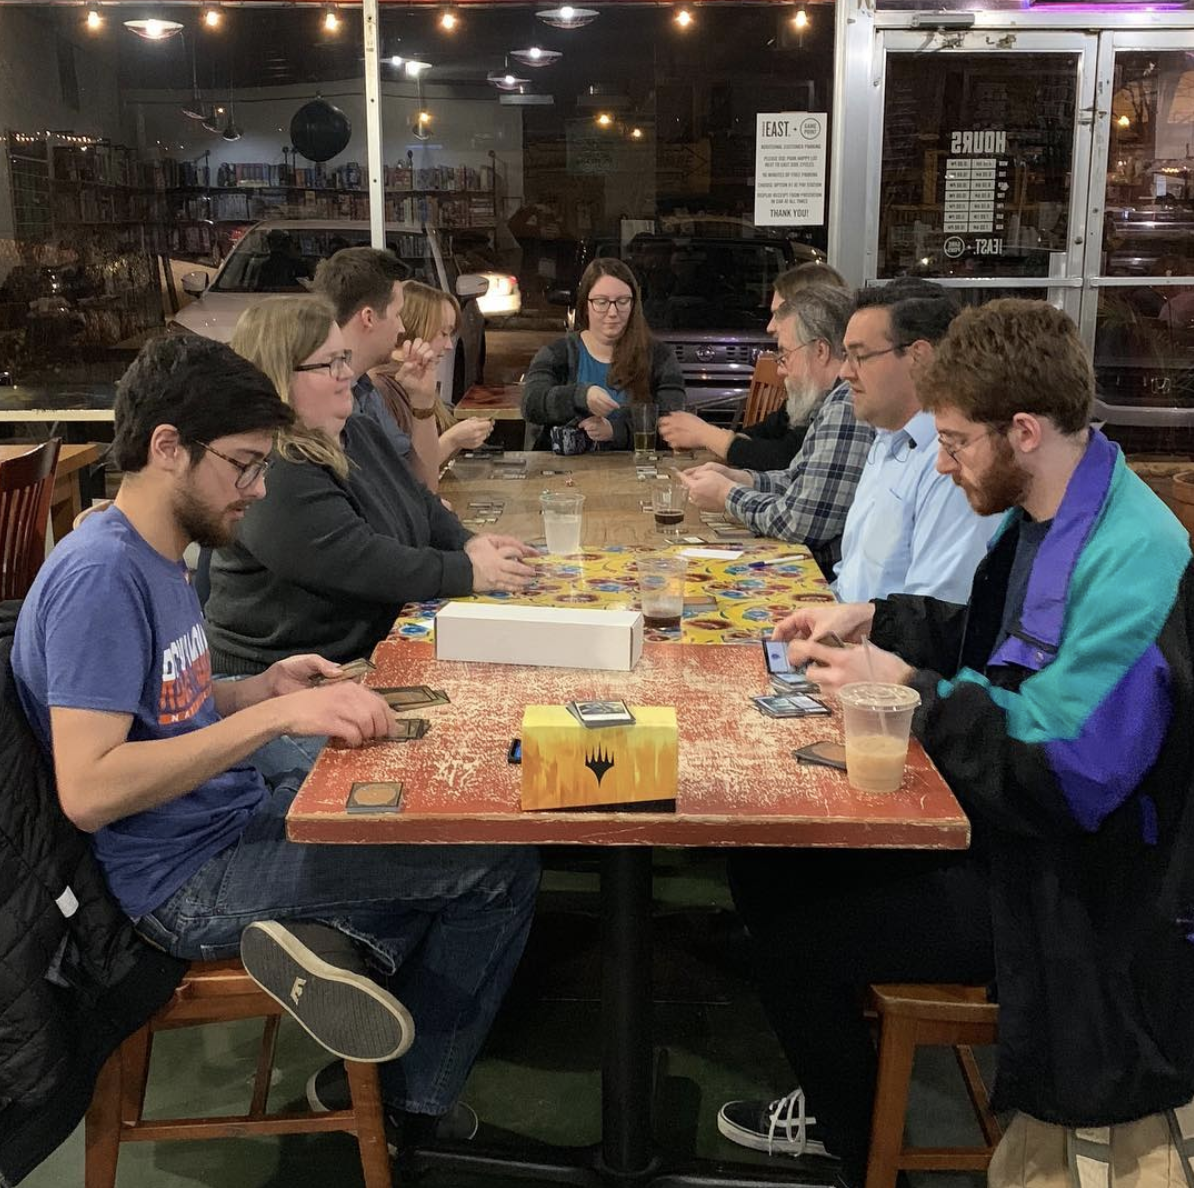 people playing board games at the Game Point Cafe